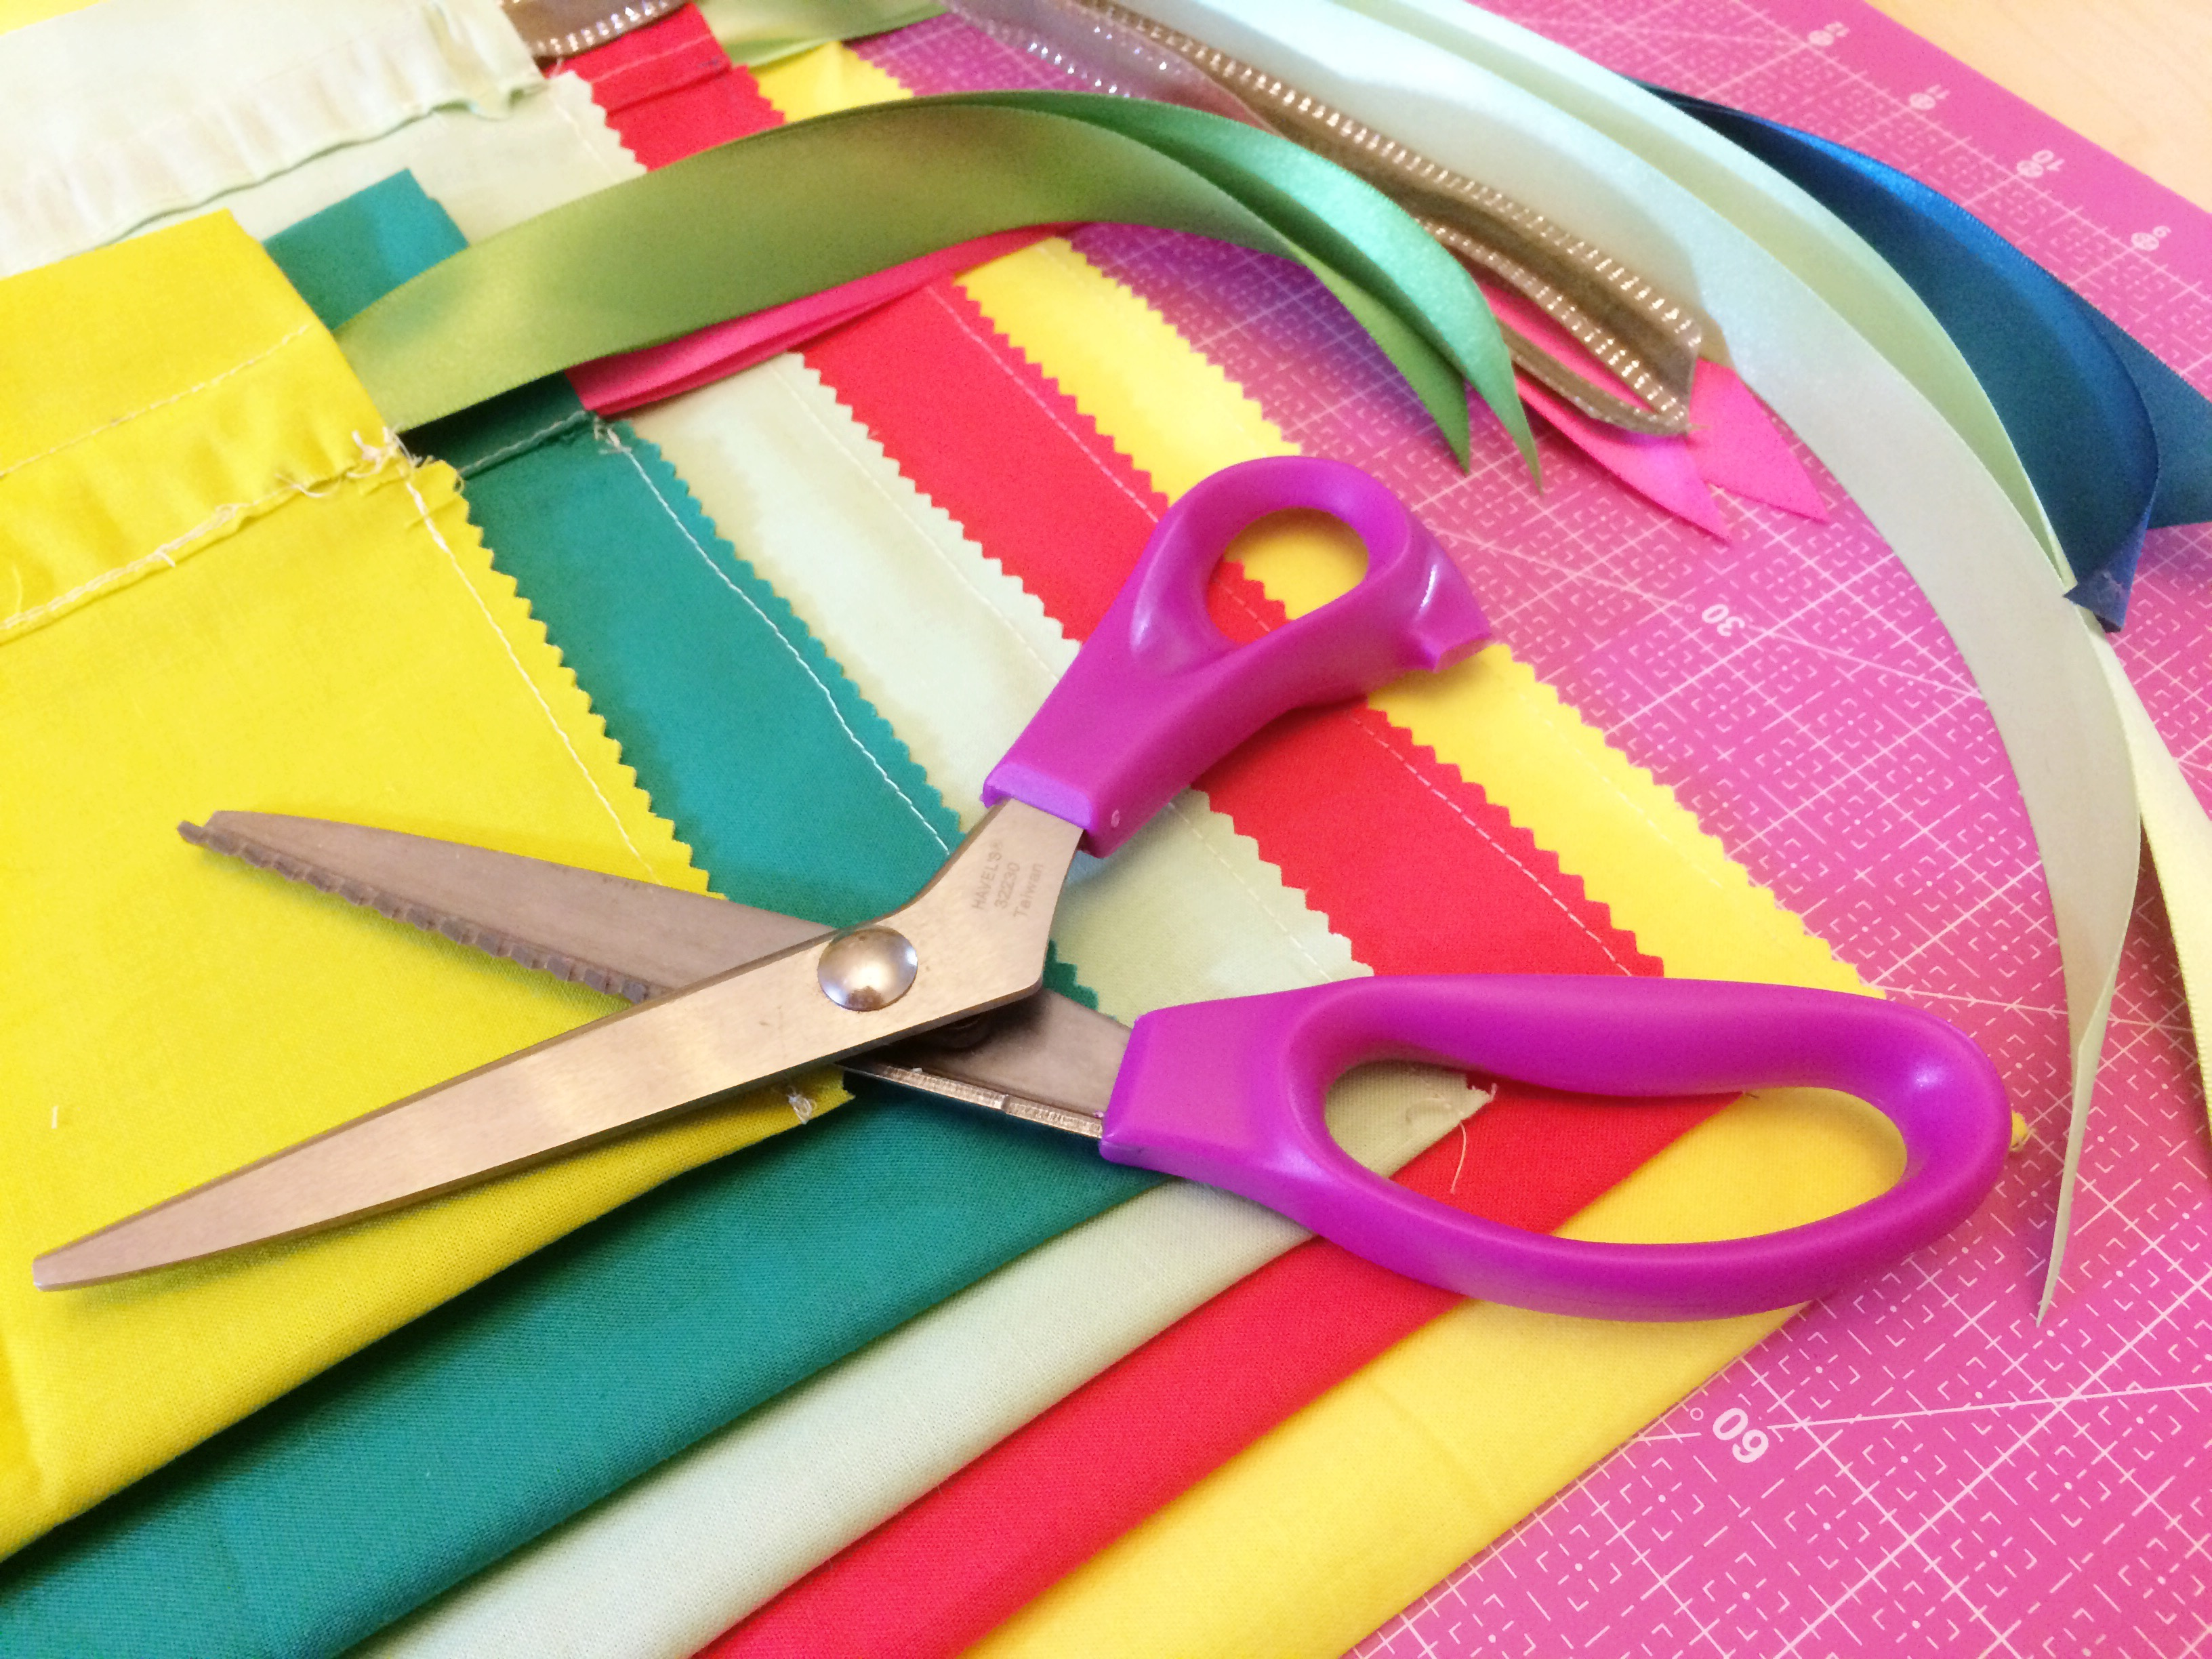 pinking-shears-holiday-crafting-laura-hartrich